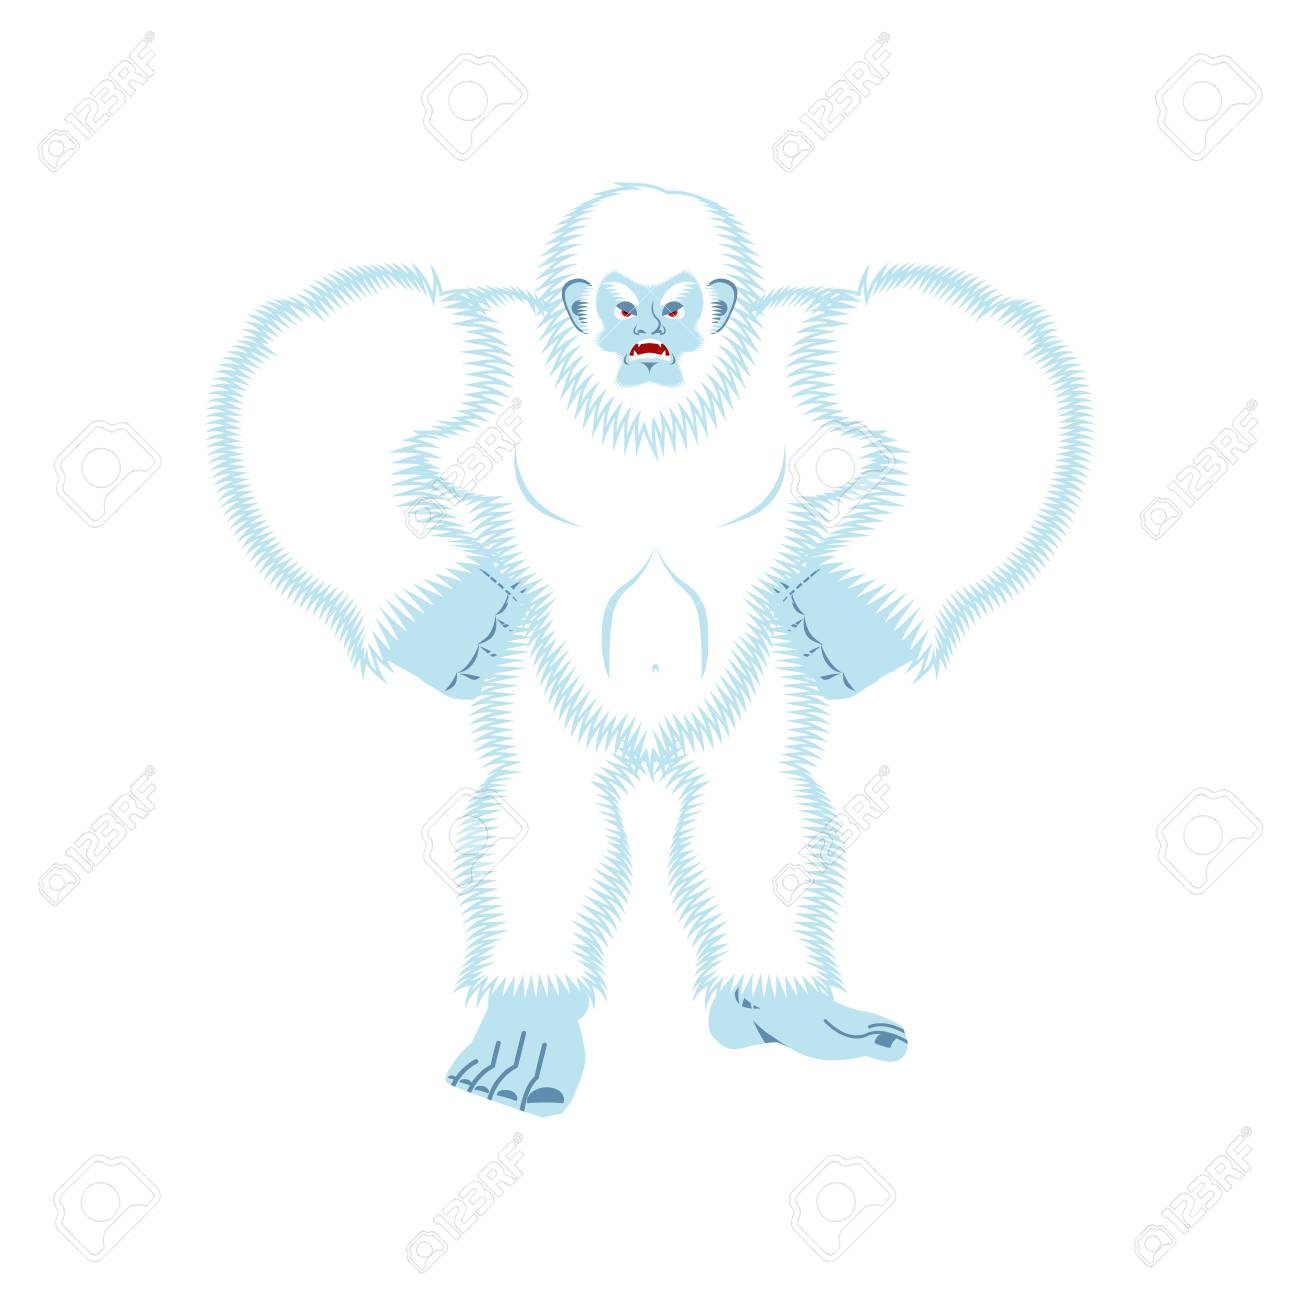 1300x1300 Yeti Angry. Bigfoot Evil. Abominable Snowman Aggressive. Vector